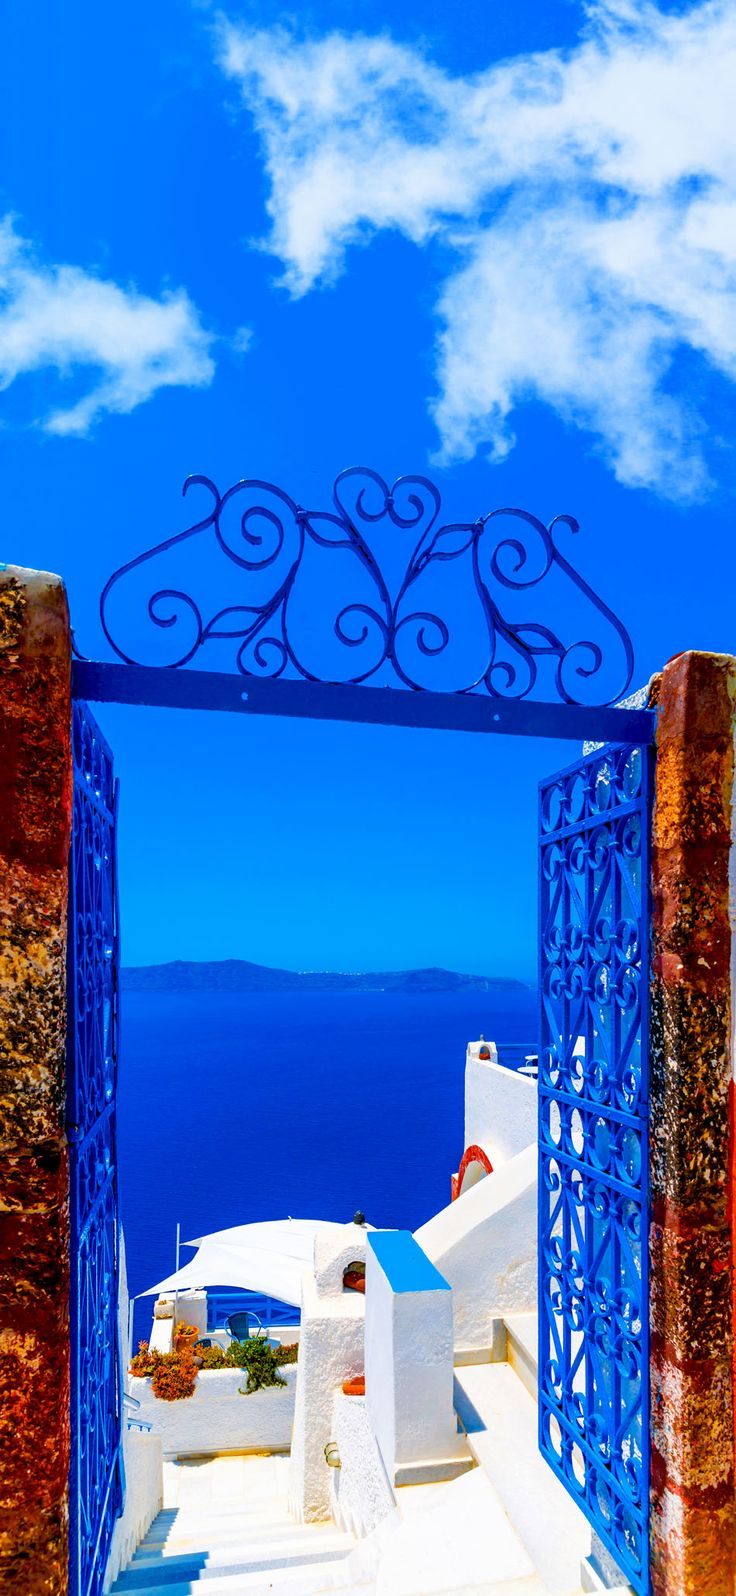 View to the sea and Volcano through a door, from Fira the capital of Santorini island in Greece         10 Breathtaking Photos of World's Most Romantic Island